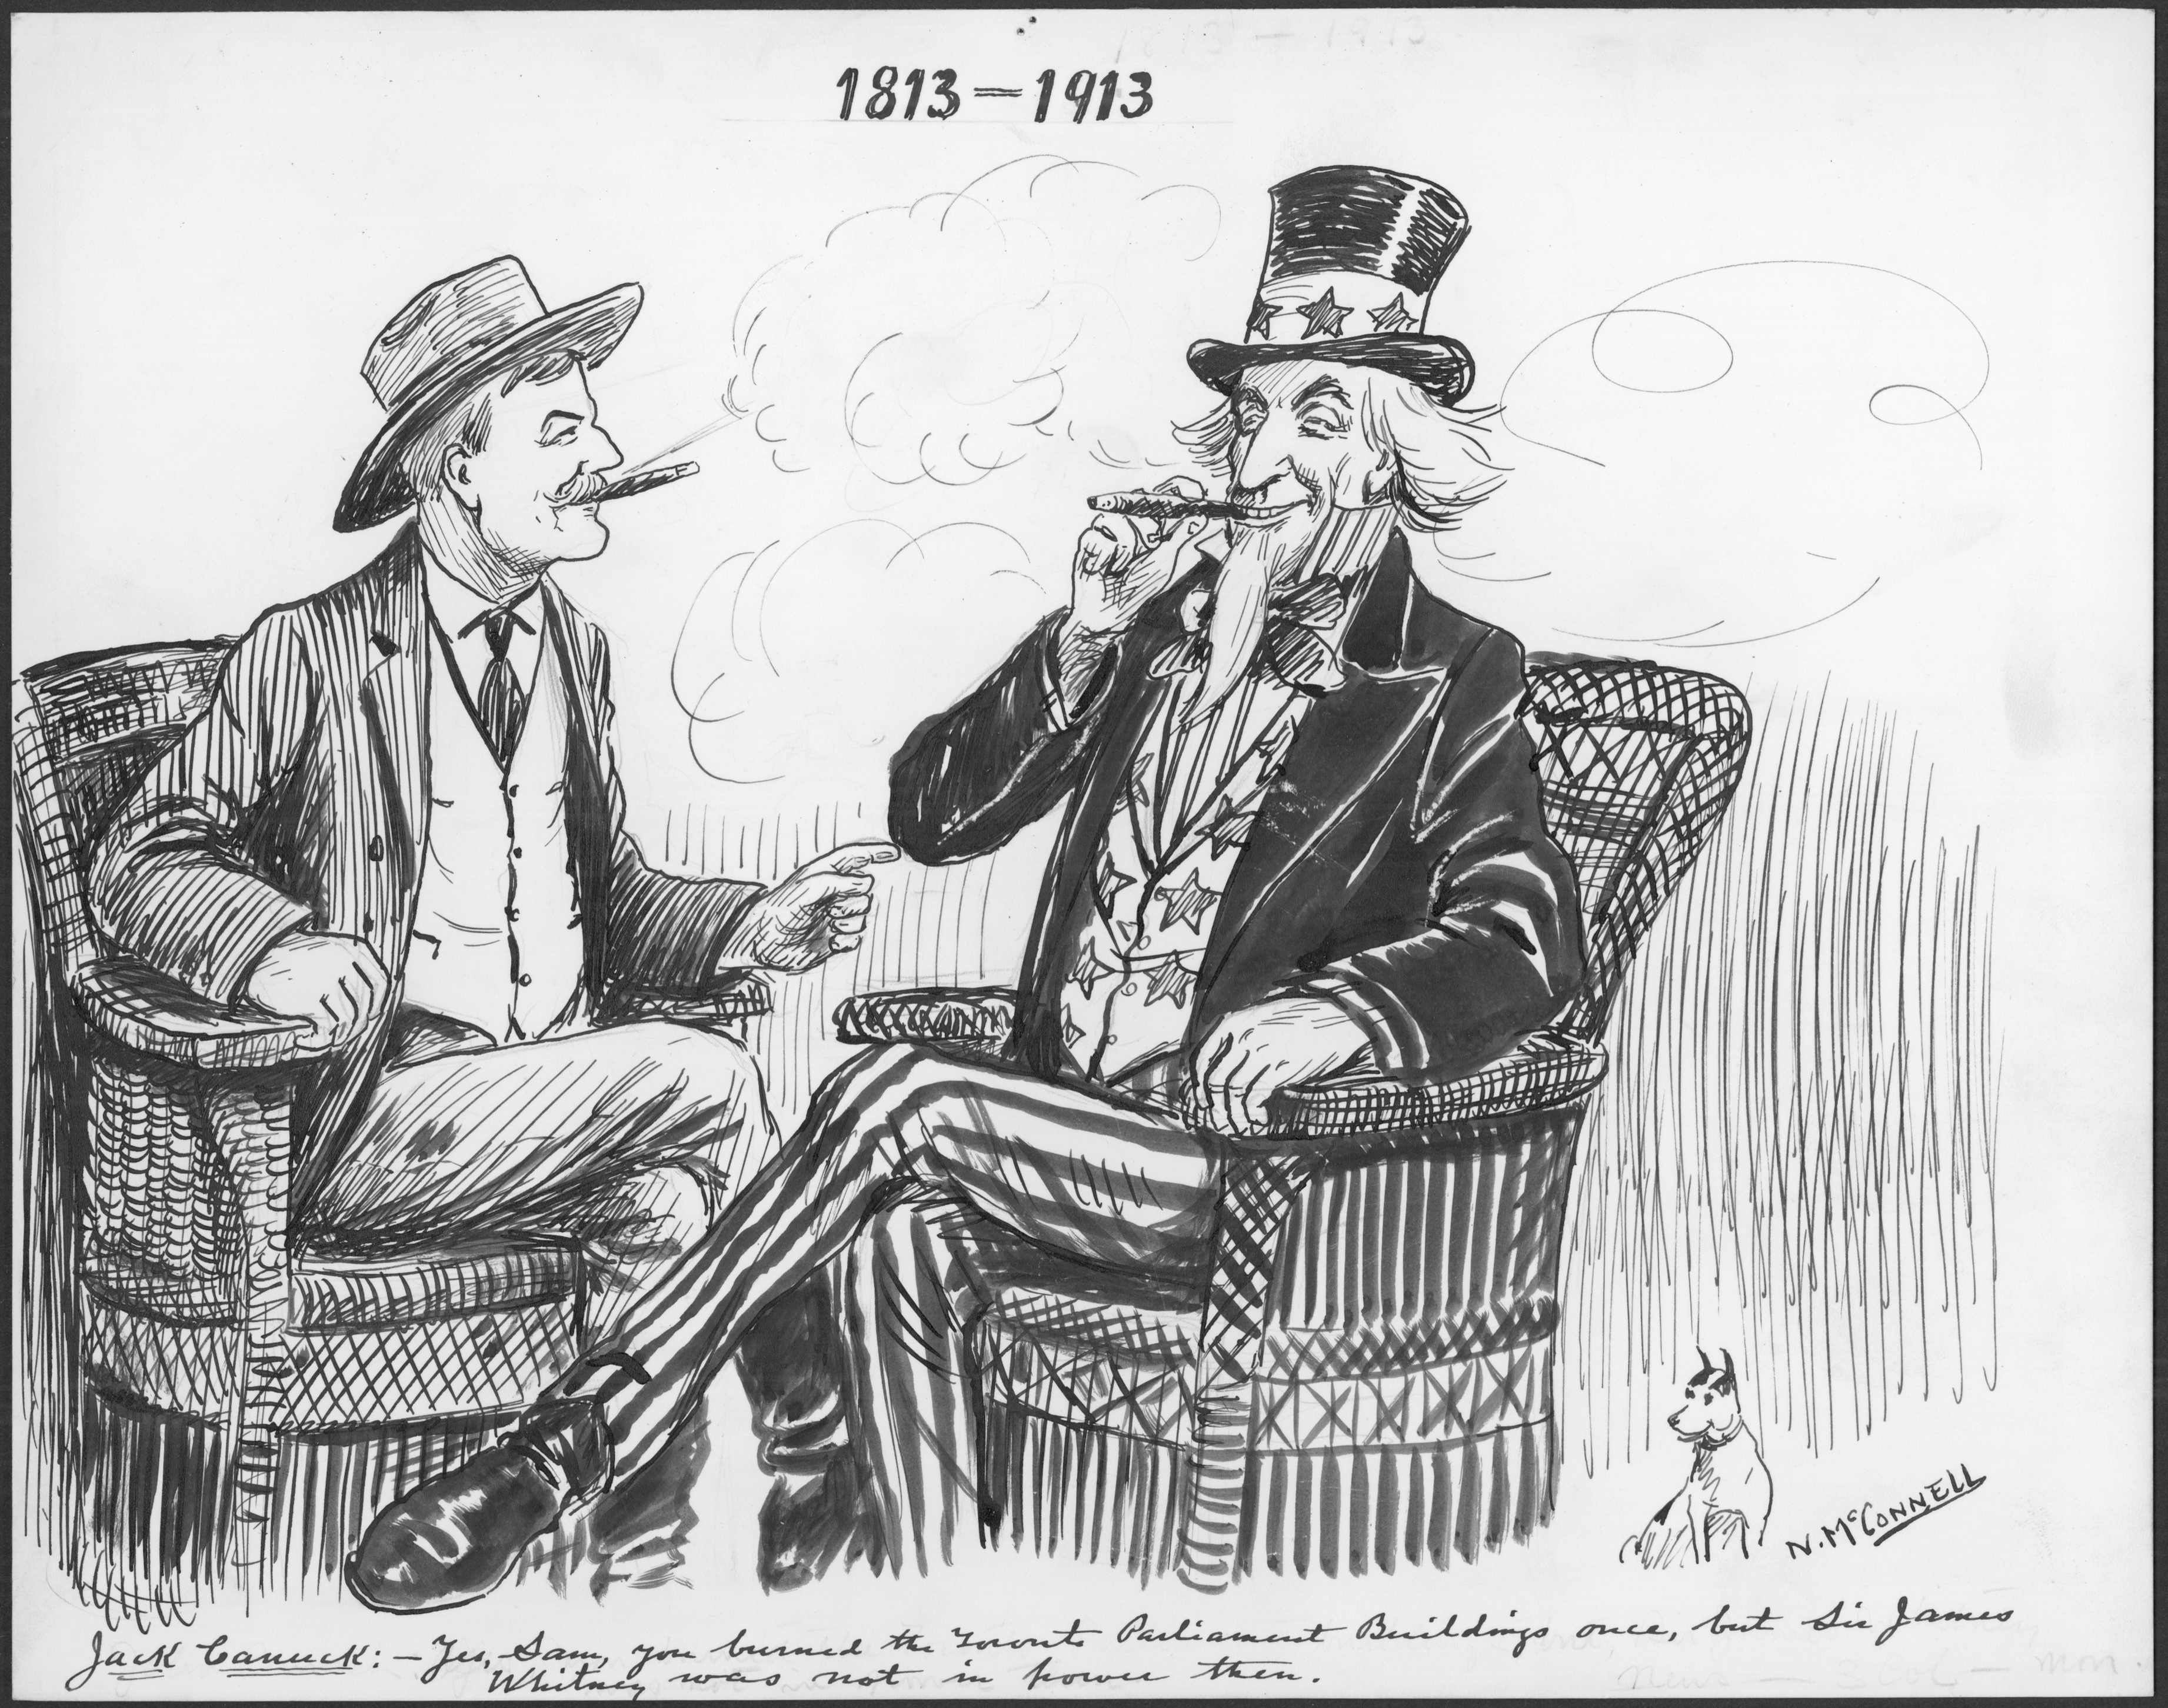 Uncle Sam and Jack Canuck smoke cigars together Johnny, or Jack, Canuck sits with Uncle Sam, the pair smoking cigars, with cordial smiles on their faces. Clouds of smoke billow about their heads. Canuck is dressed in a regular, plain three-piece suit and a wide-brimmed hat. He is leaning forward in his chair, pointing at Uncle Sam. Uncle Sam wears a black coat, a starry waistcoat, long striped pants, and a black tall top hat with stars on the band. He leans back in his chair, relaxed.